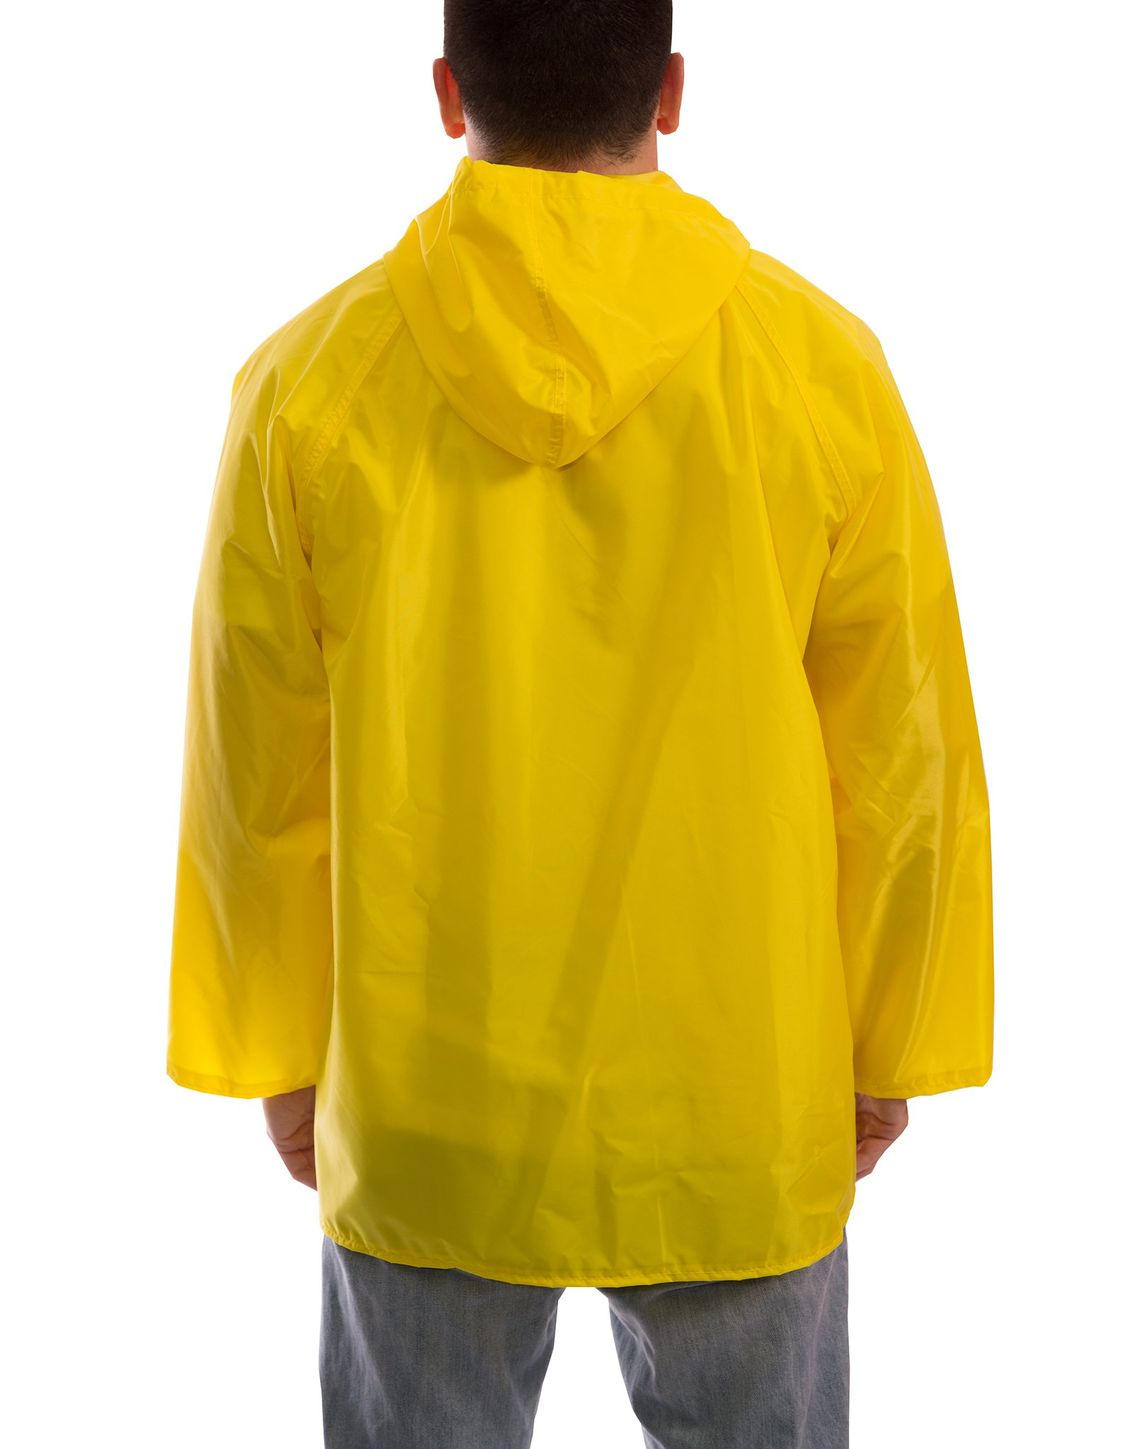 tingley-j21107-eagle-water-repellant-jacket-polyurethane-interior-with-attached-hood-back.jpg